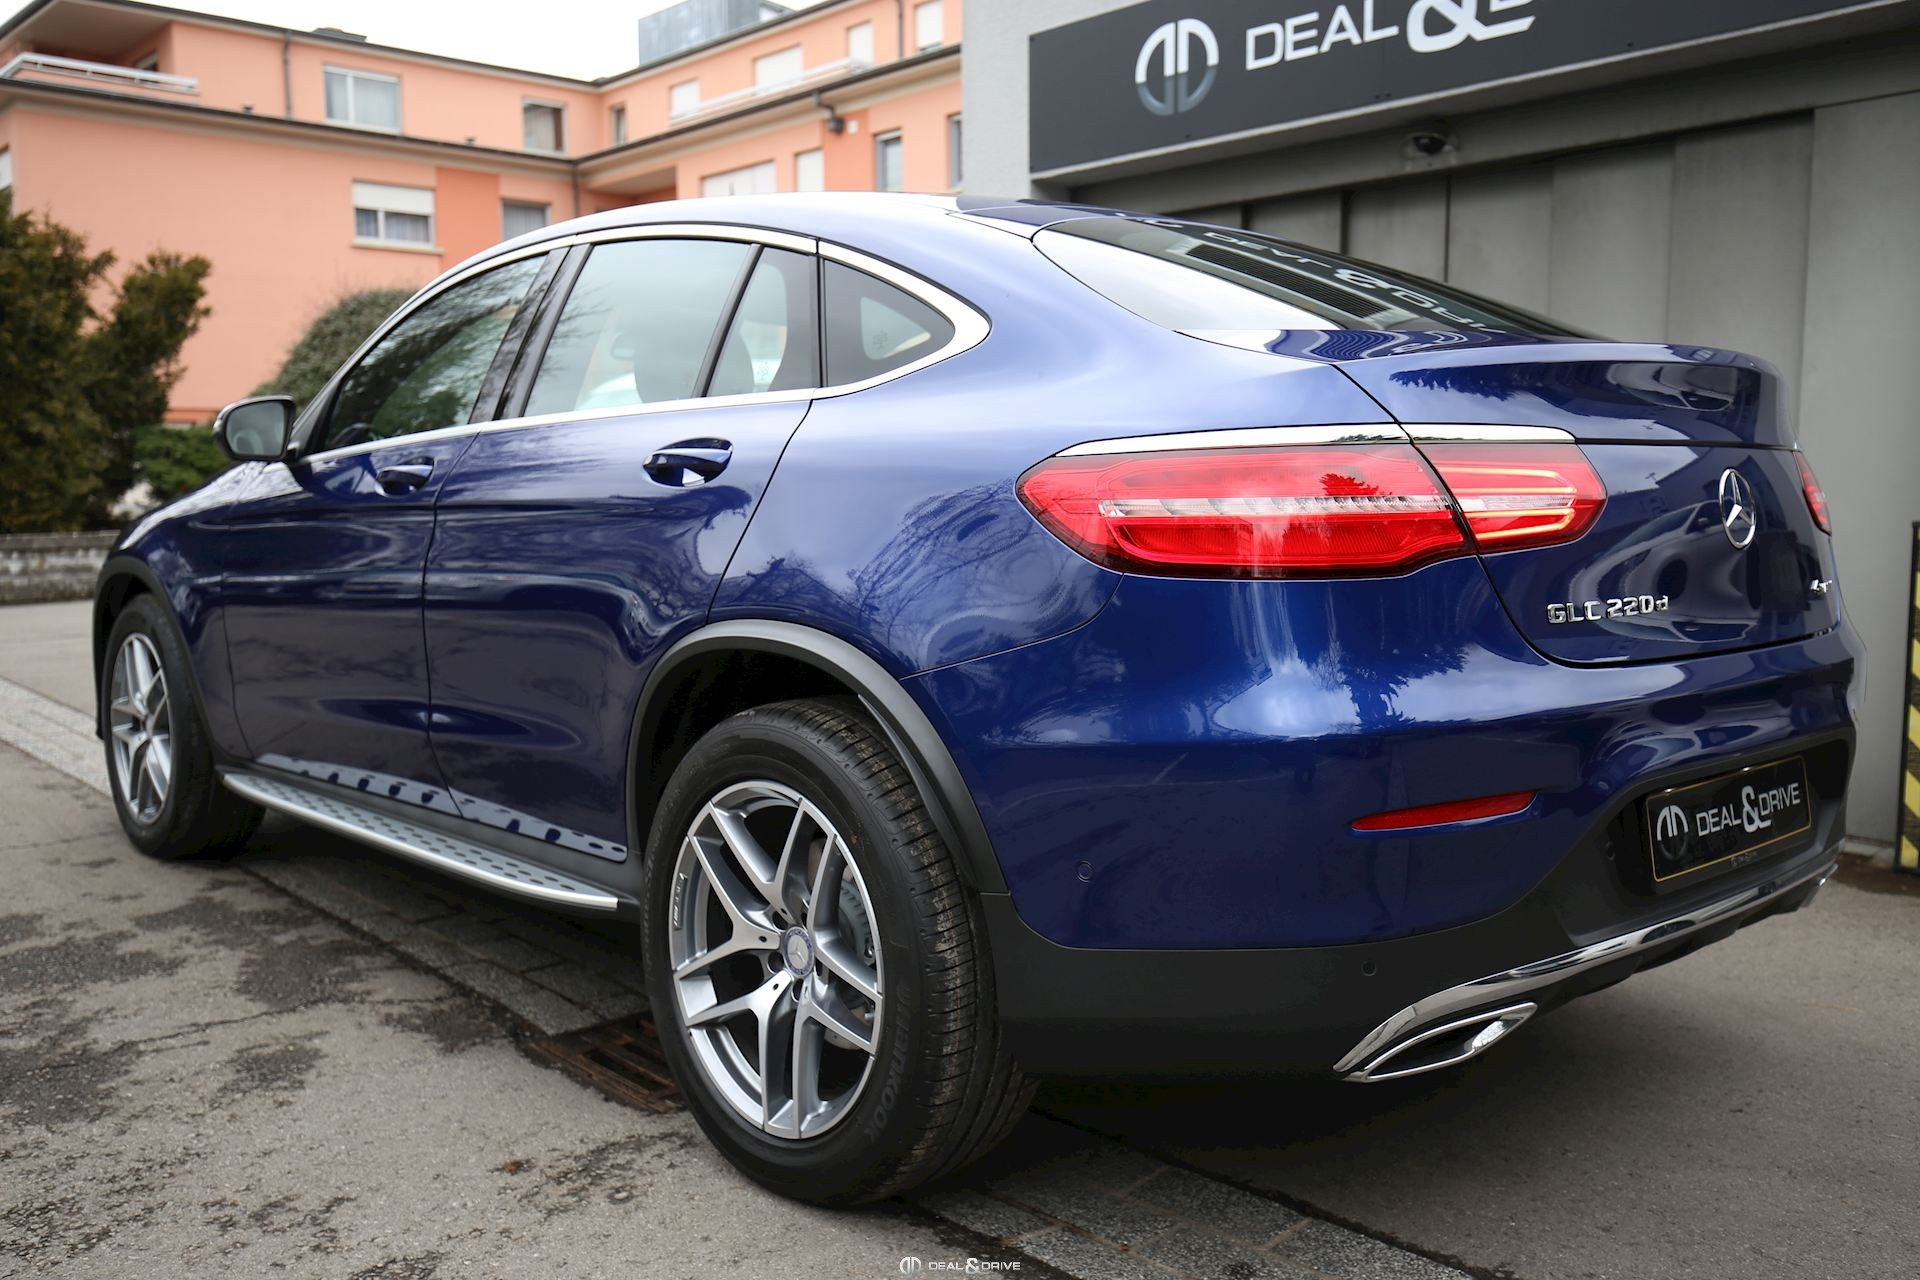 MERCEDES GLC Coupe 220 d AMG Deal & Drive